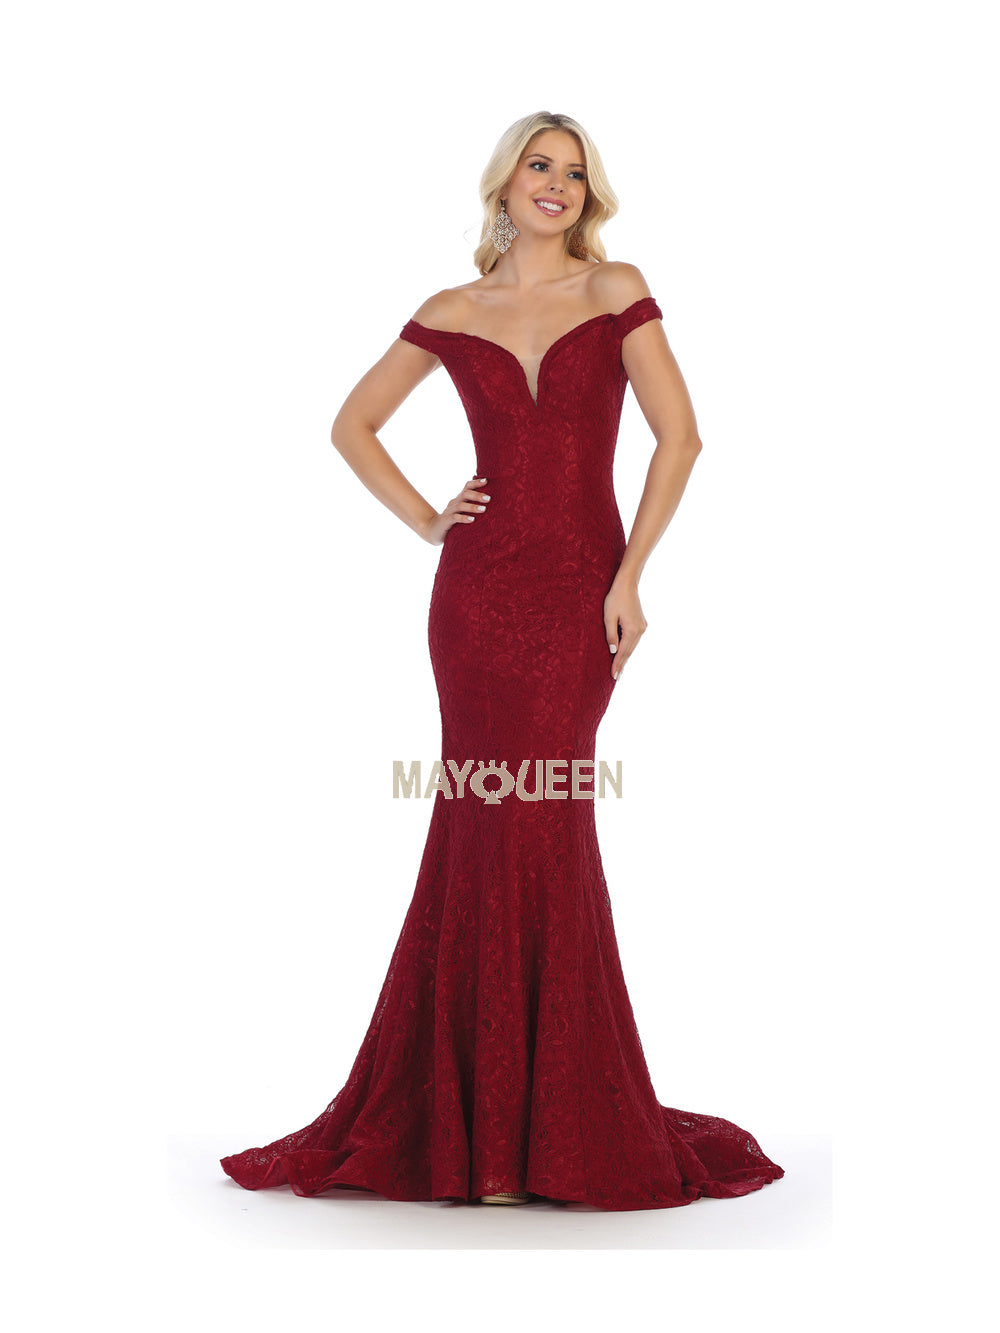 Mayqueen Size Chart E MQ 1596 - Off the Shoulder Lace Mermaid Gown with Corset Back - Diggz Prom